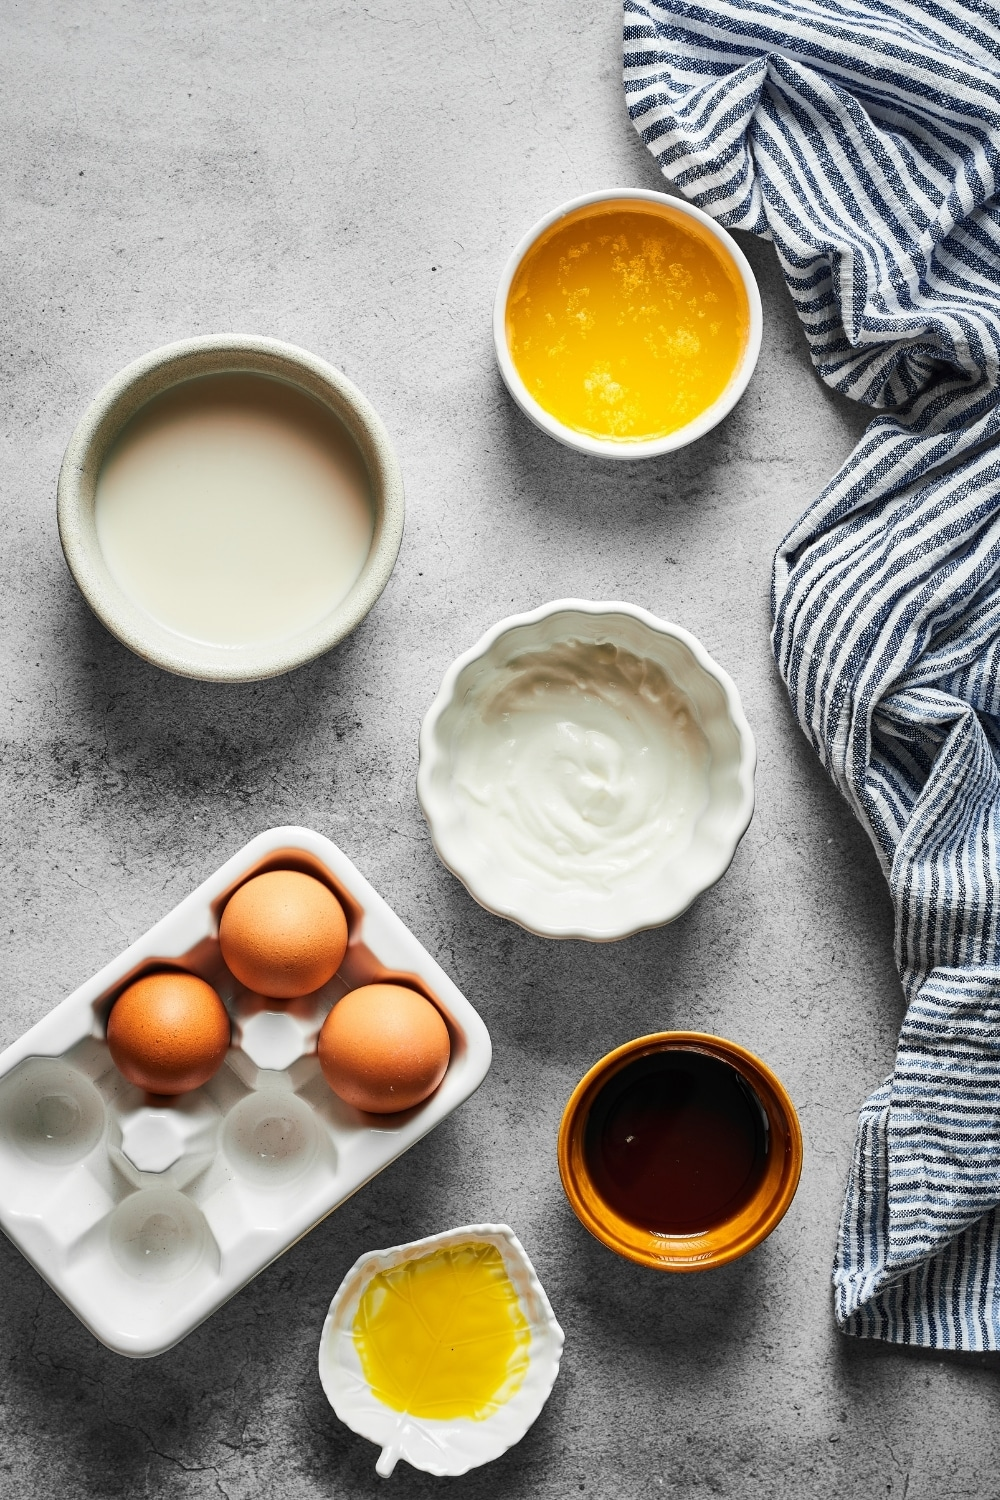 A small bowl of melted butter, a small bowl of milk, sour cream, banana extract, maple syrup, and three eggs all on a gray counter.